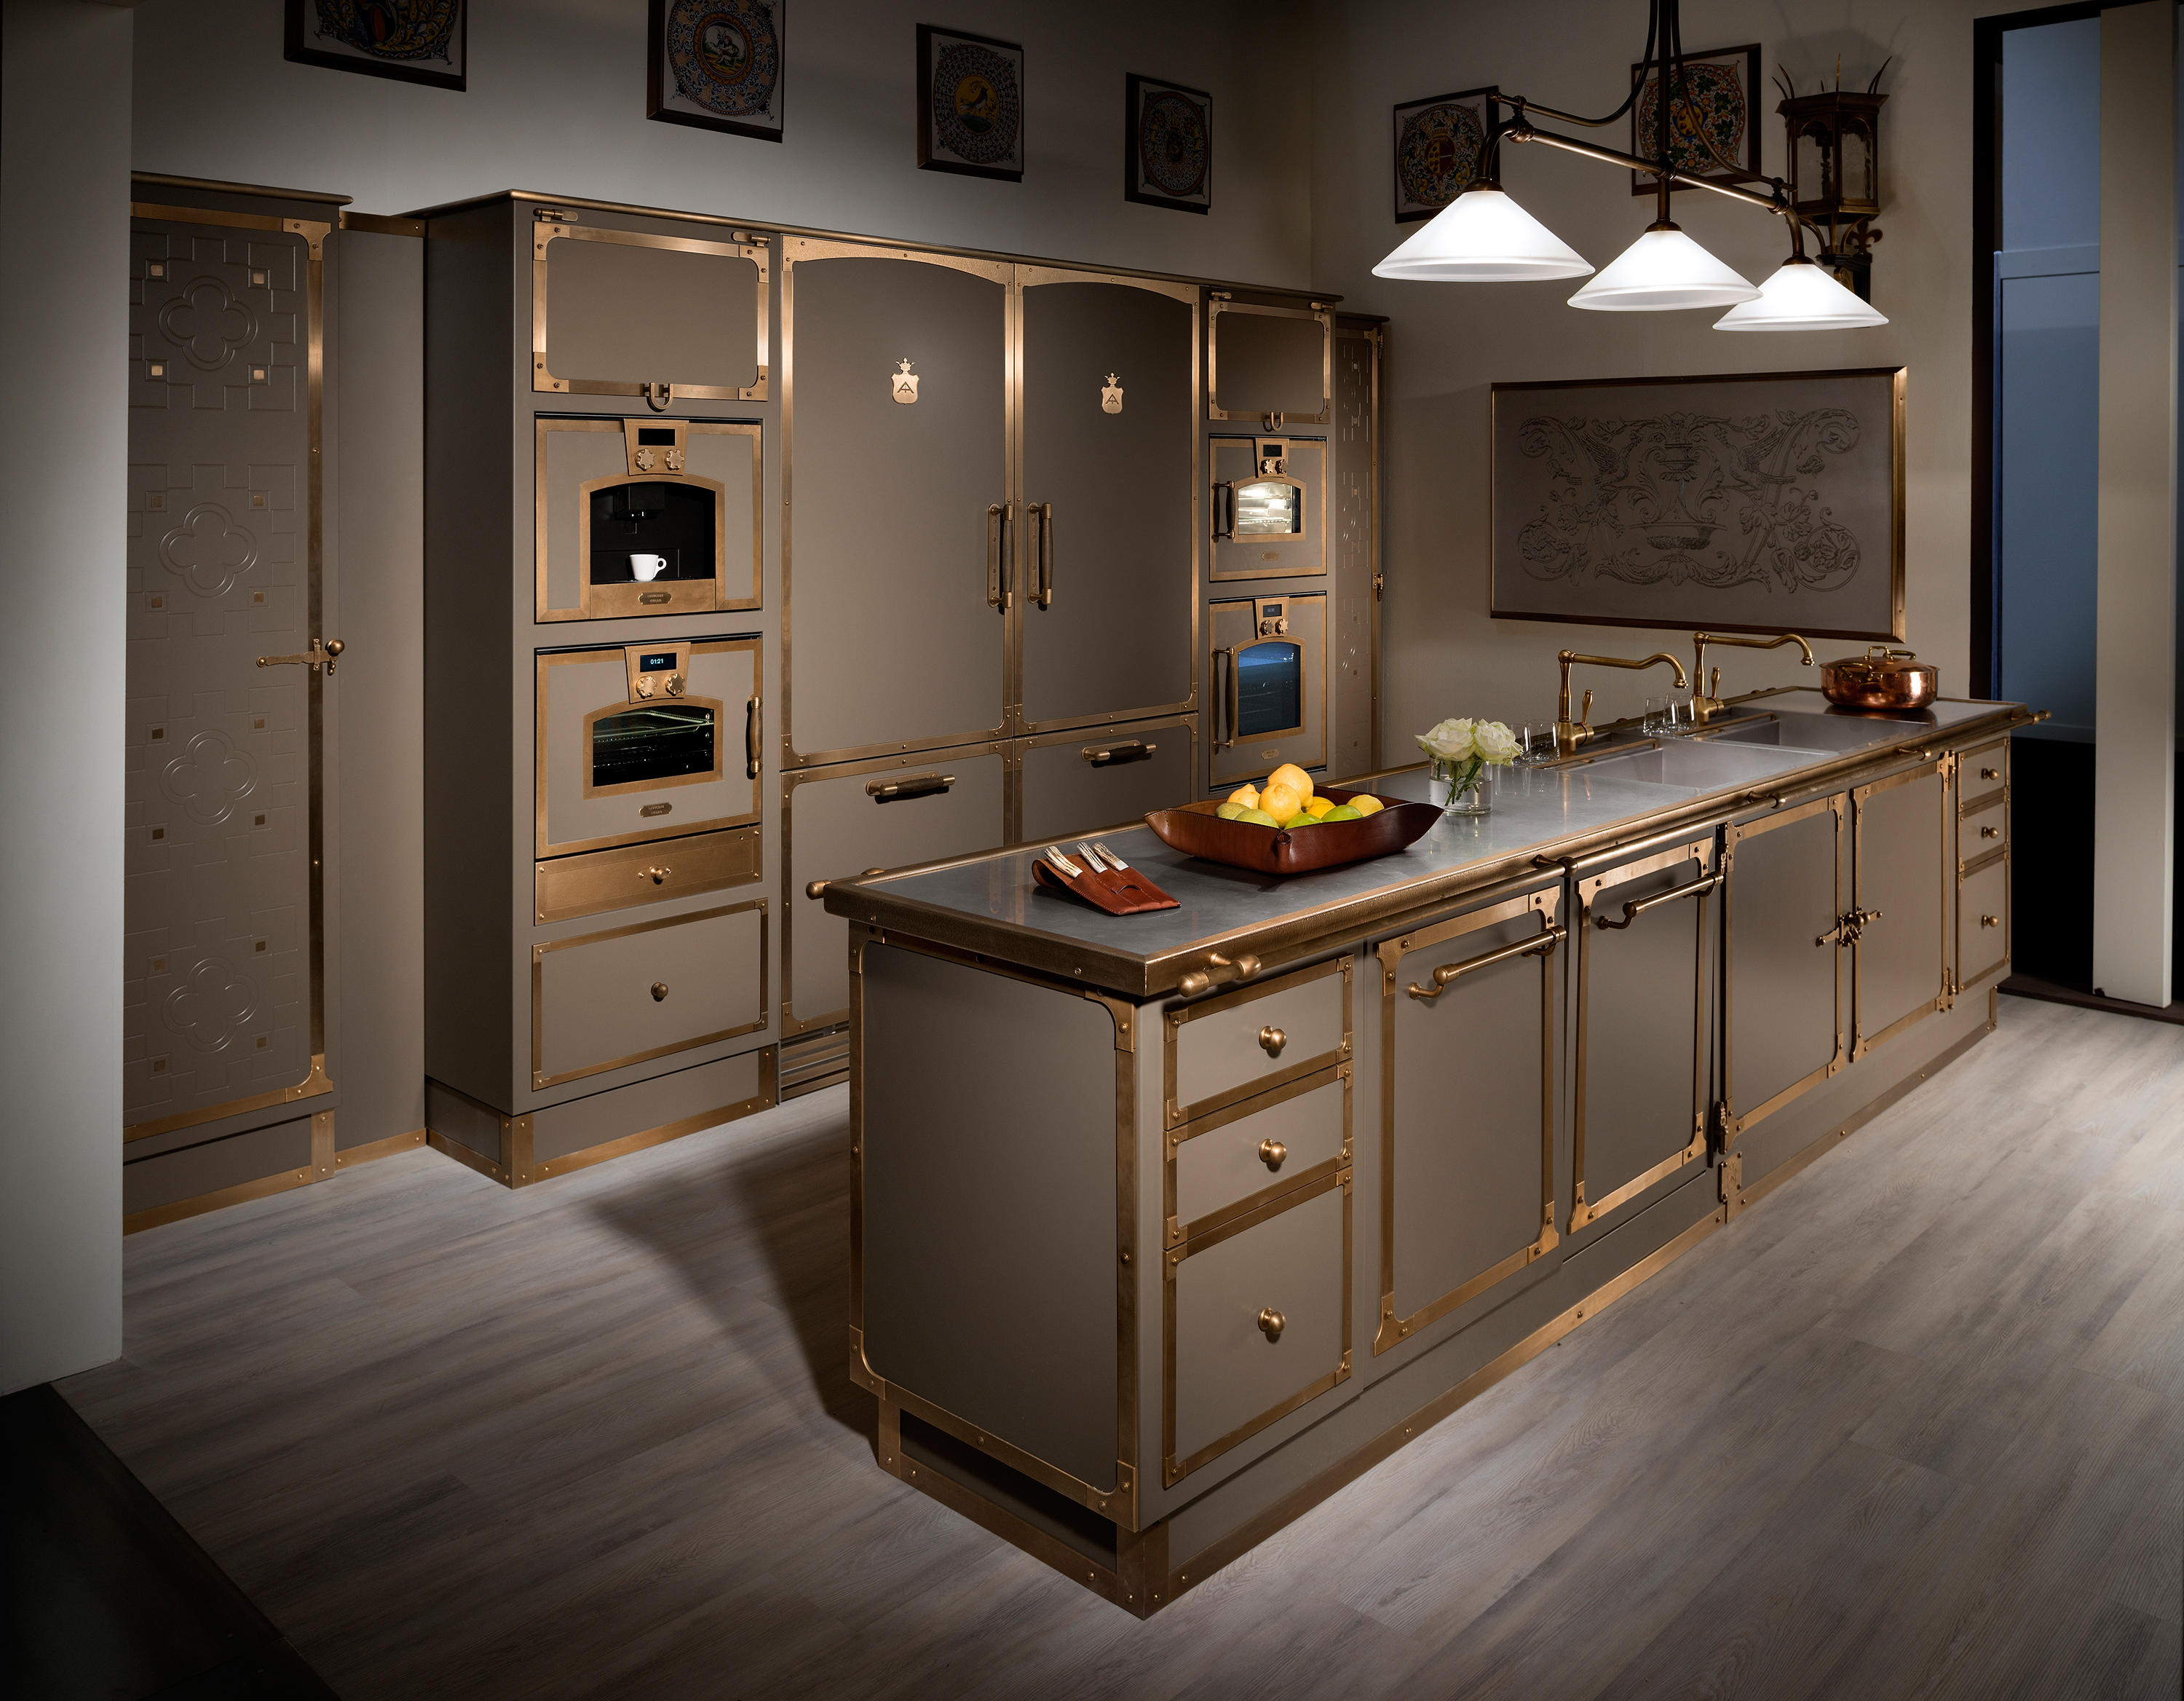 GREY BEIGE TOUCH KITCHEN Fitted Kitchens From Officine Gullo - Grey fitted kitchens